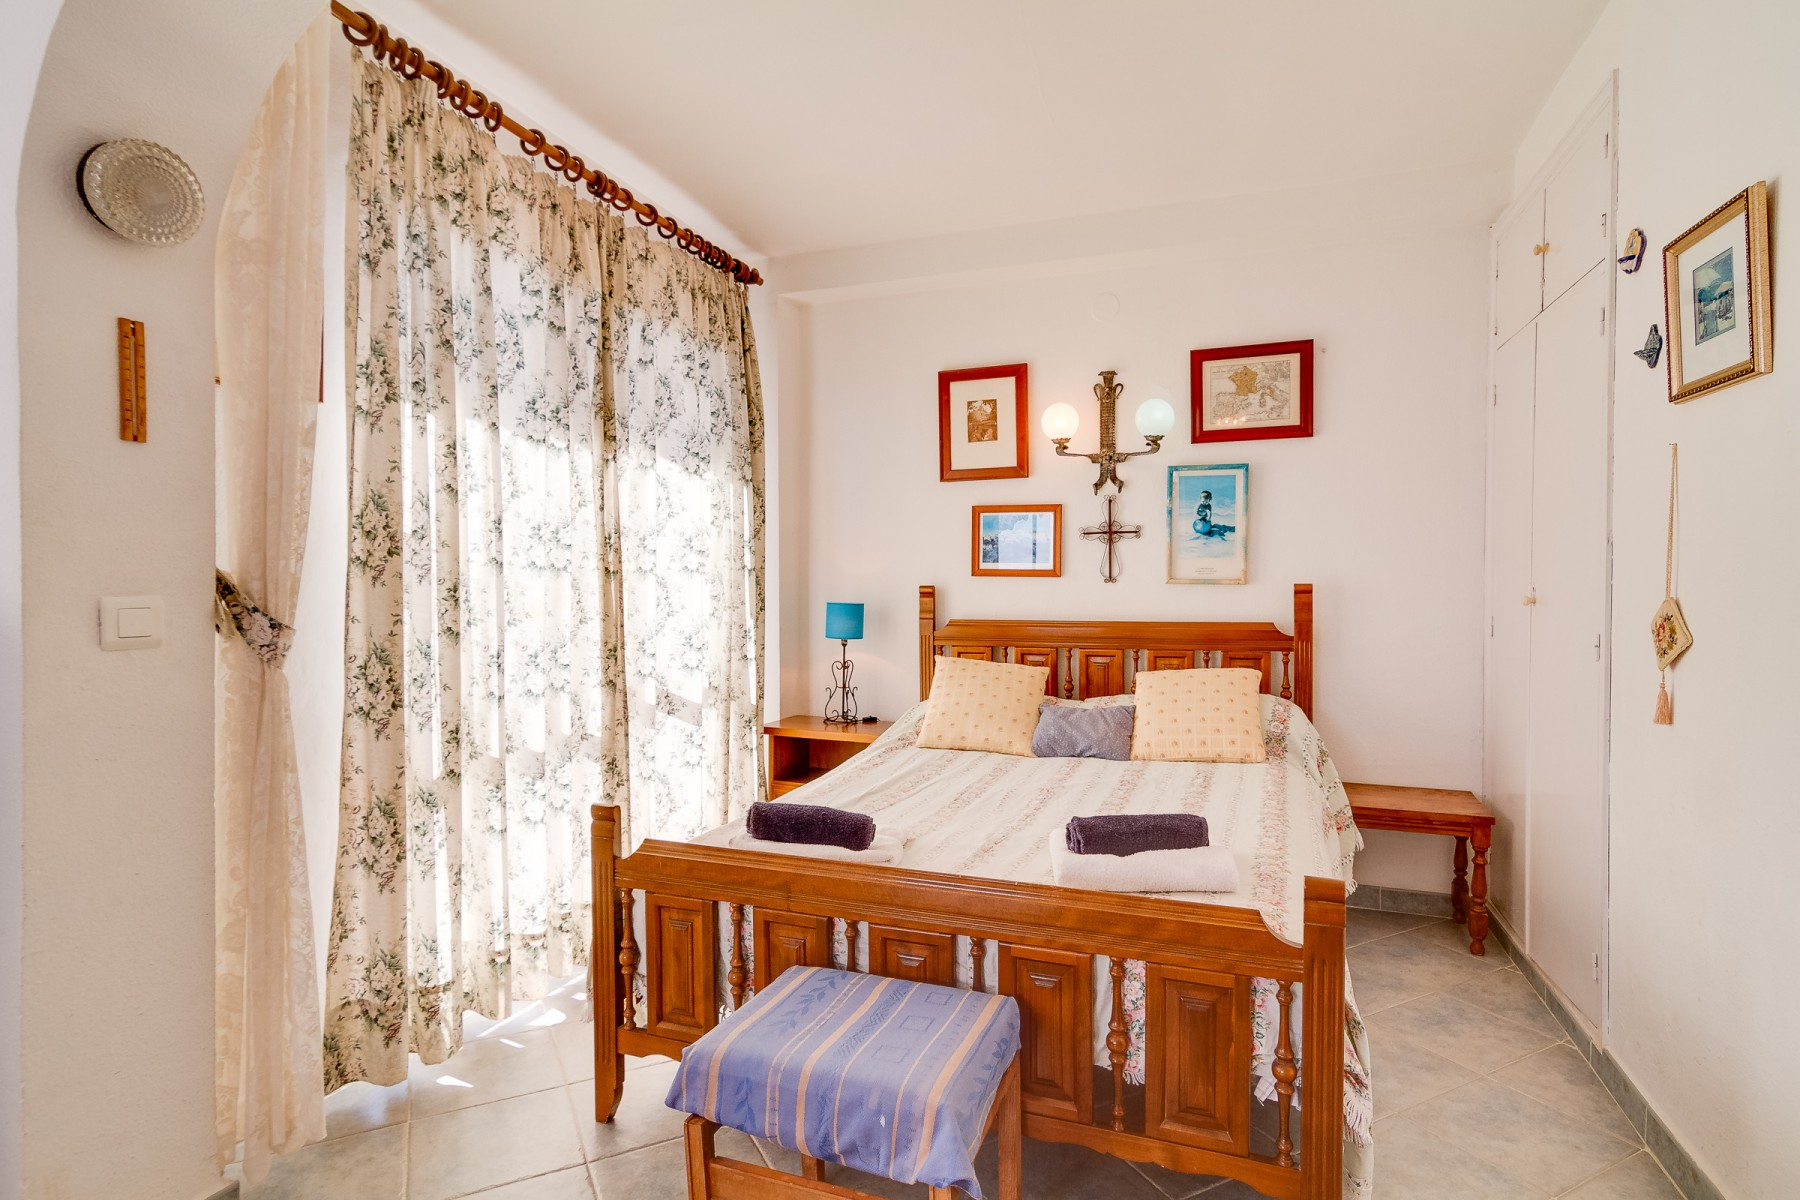 Holiday Rentals apartment facing the sea in Nerja